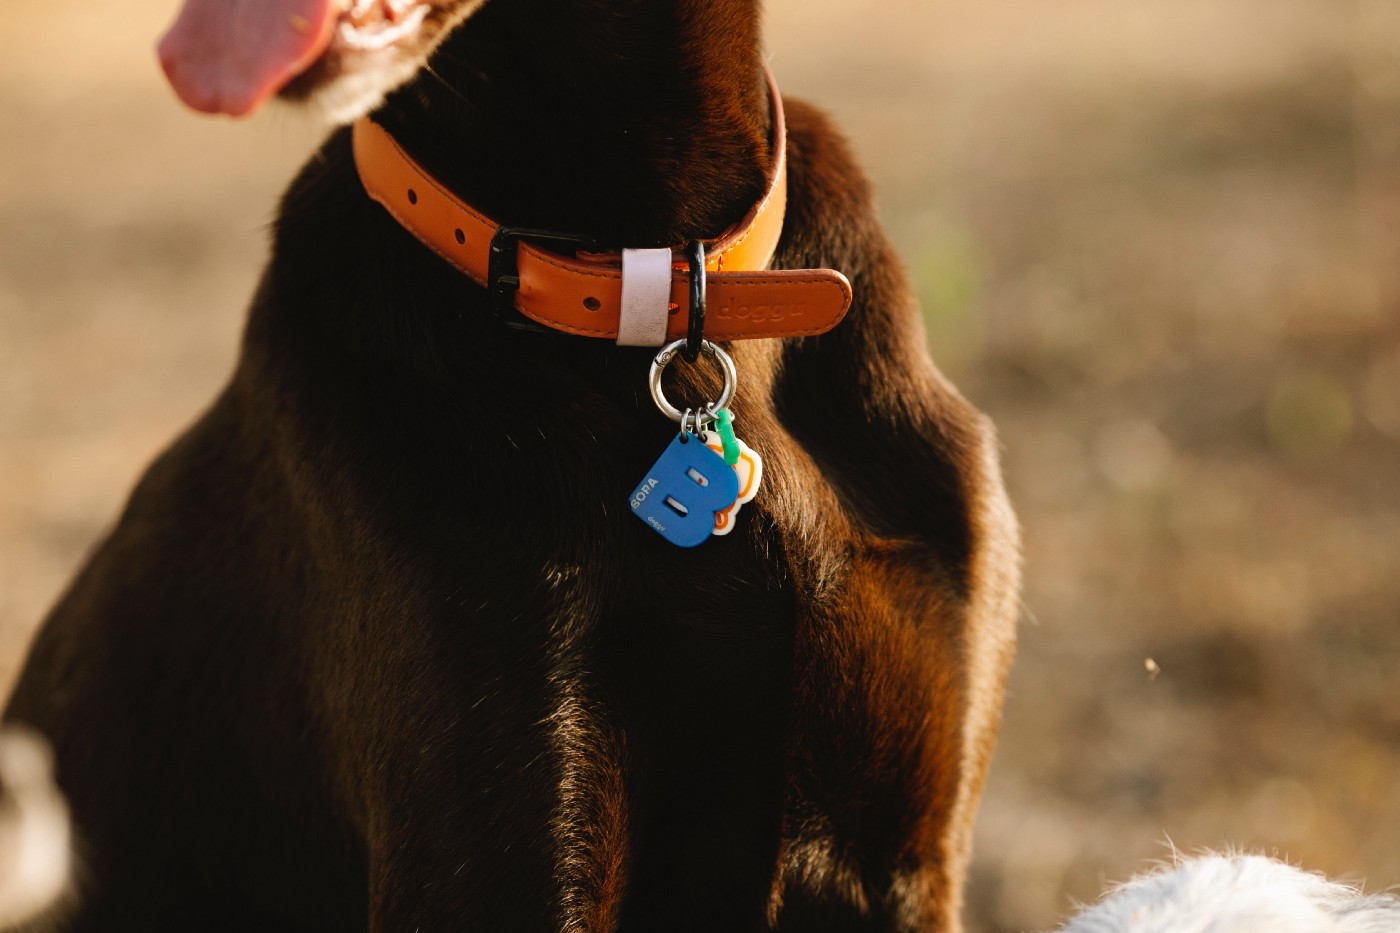 A zoom-in of a black dog's collar, which has a number of identifiers attached to the collar to identify him.